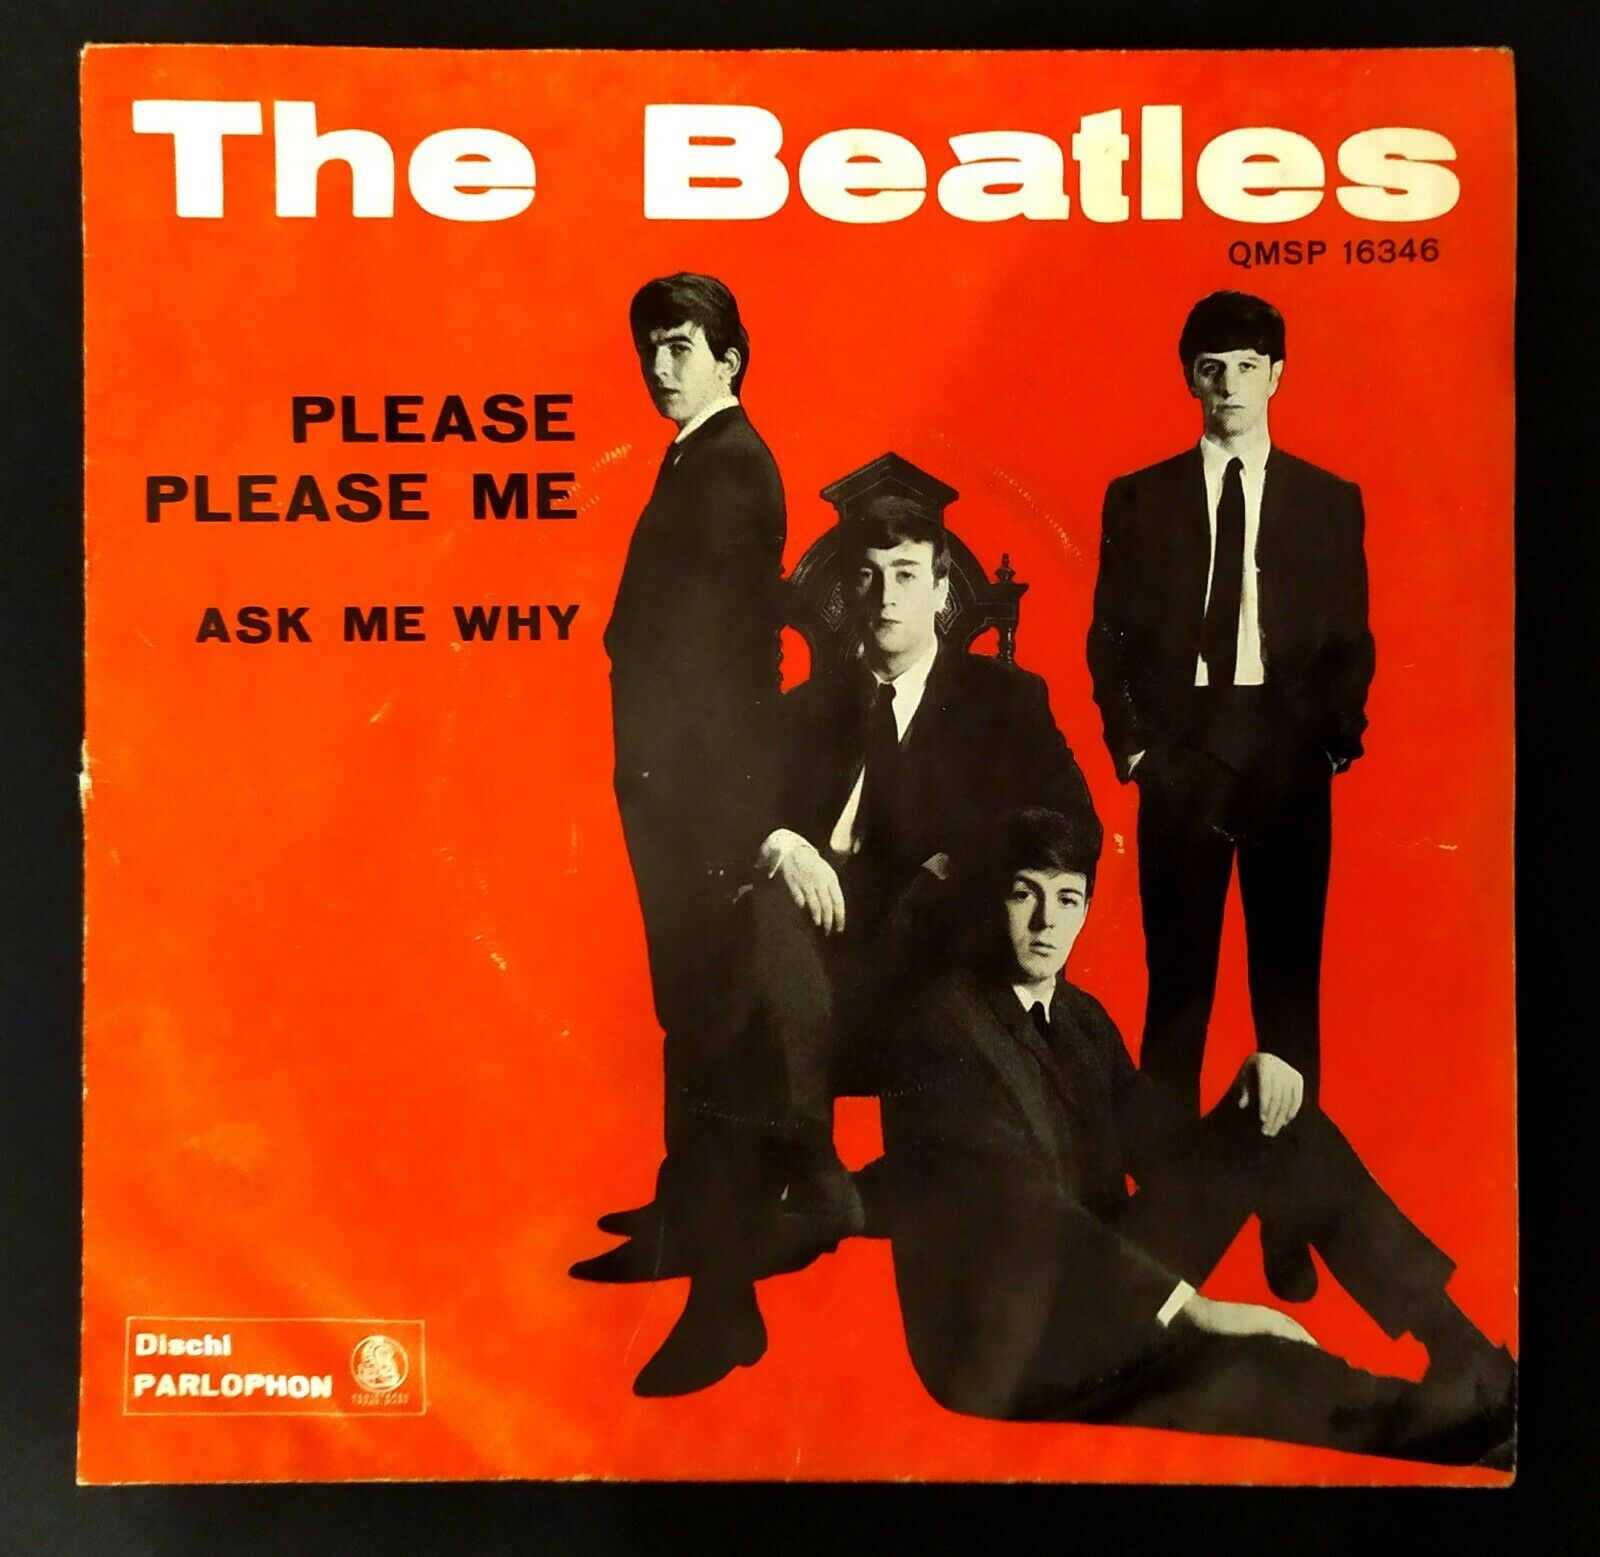 THE BEATLES (45 RPM - ITALY) QMSP 16346 - PLEASE PLEASE ME  (VERY FIRST EDITION)